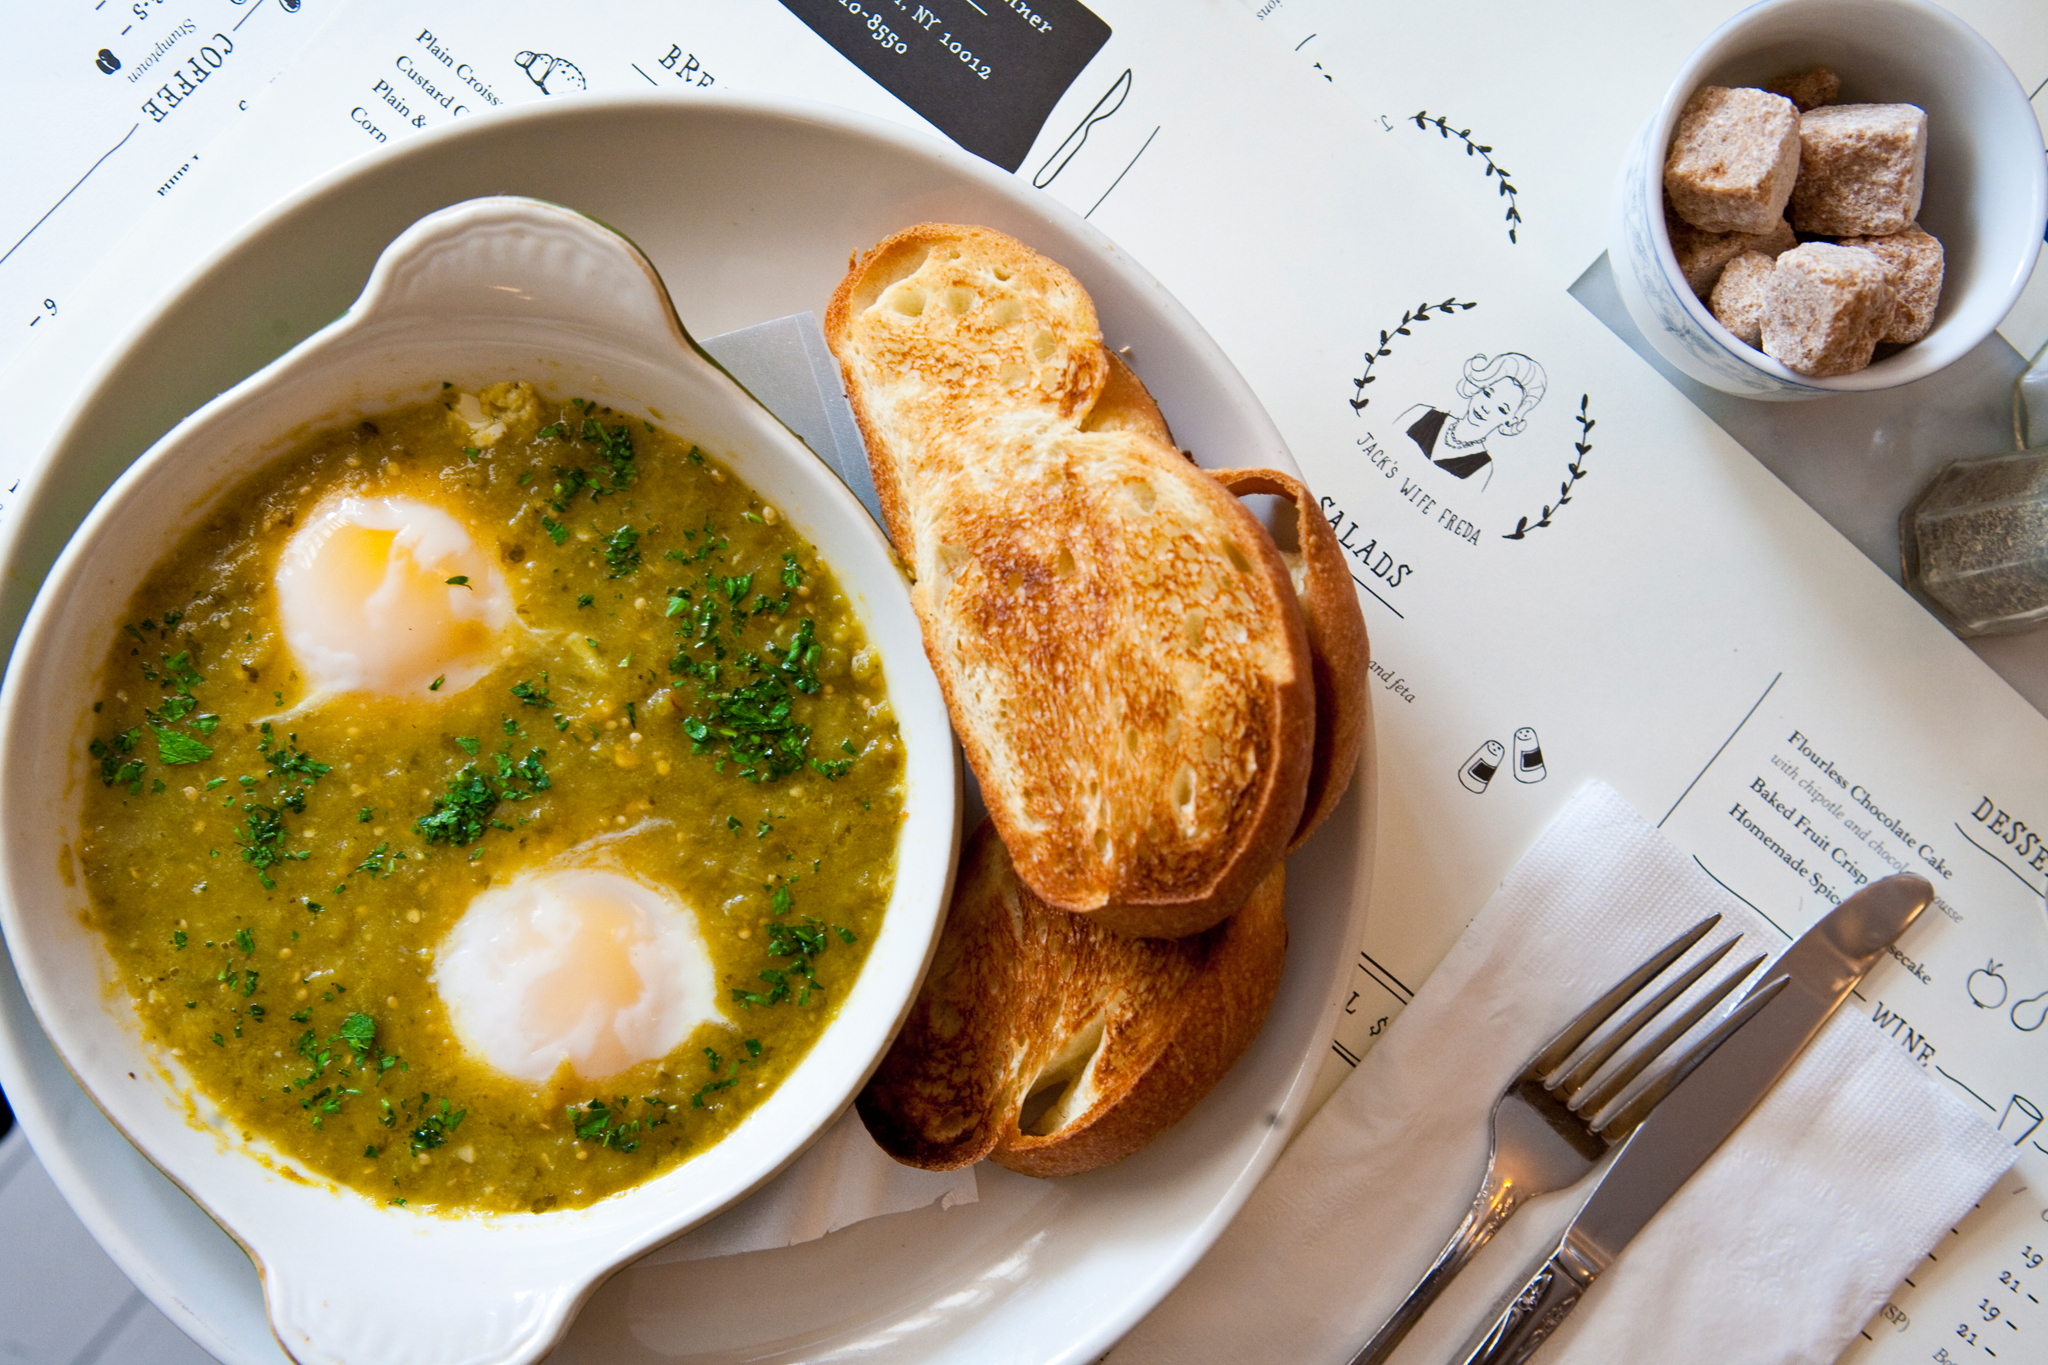 Top Breakfast Restaurants In New York City